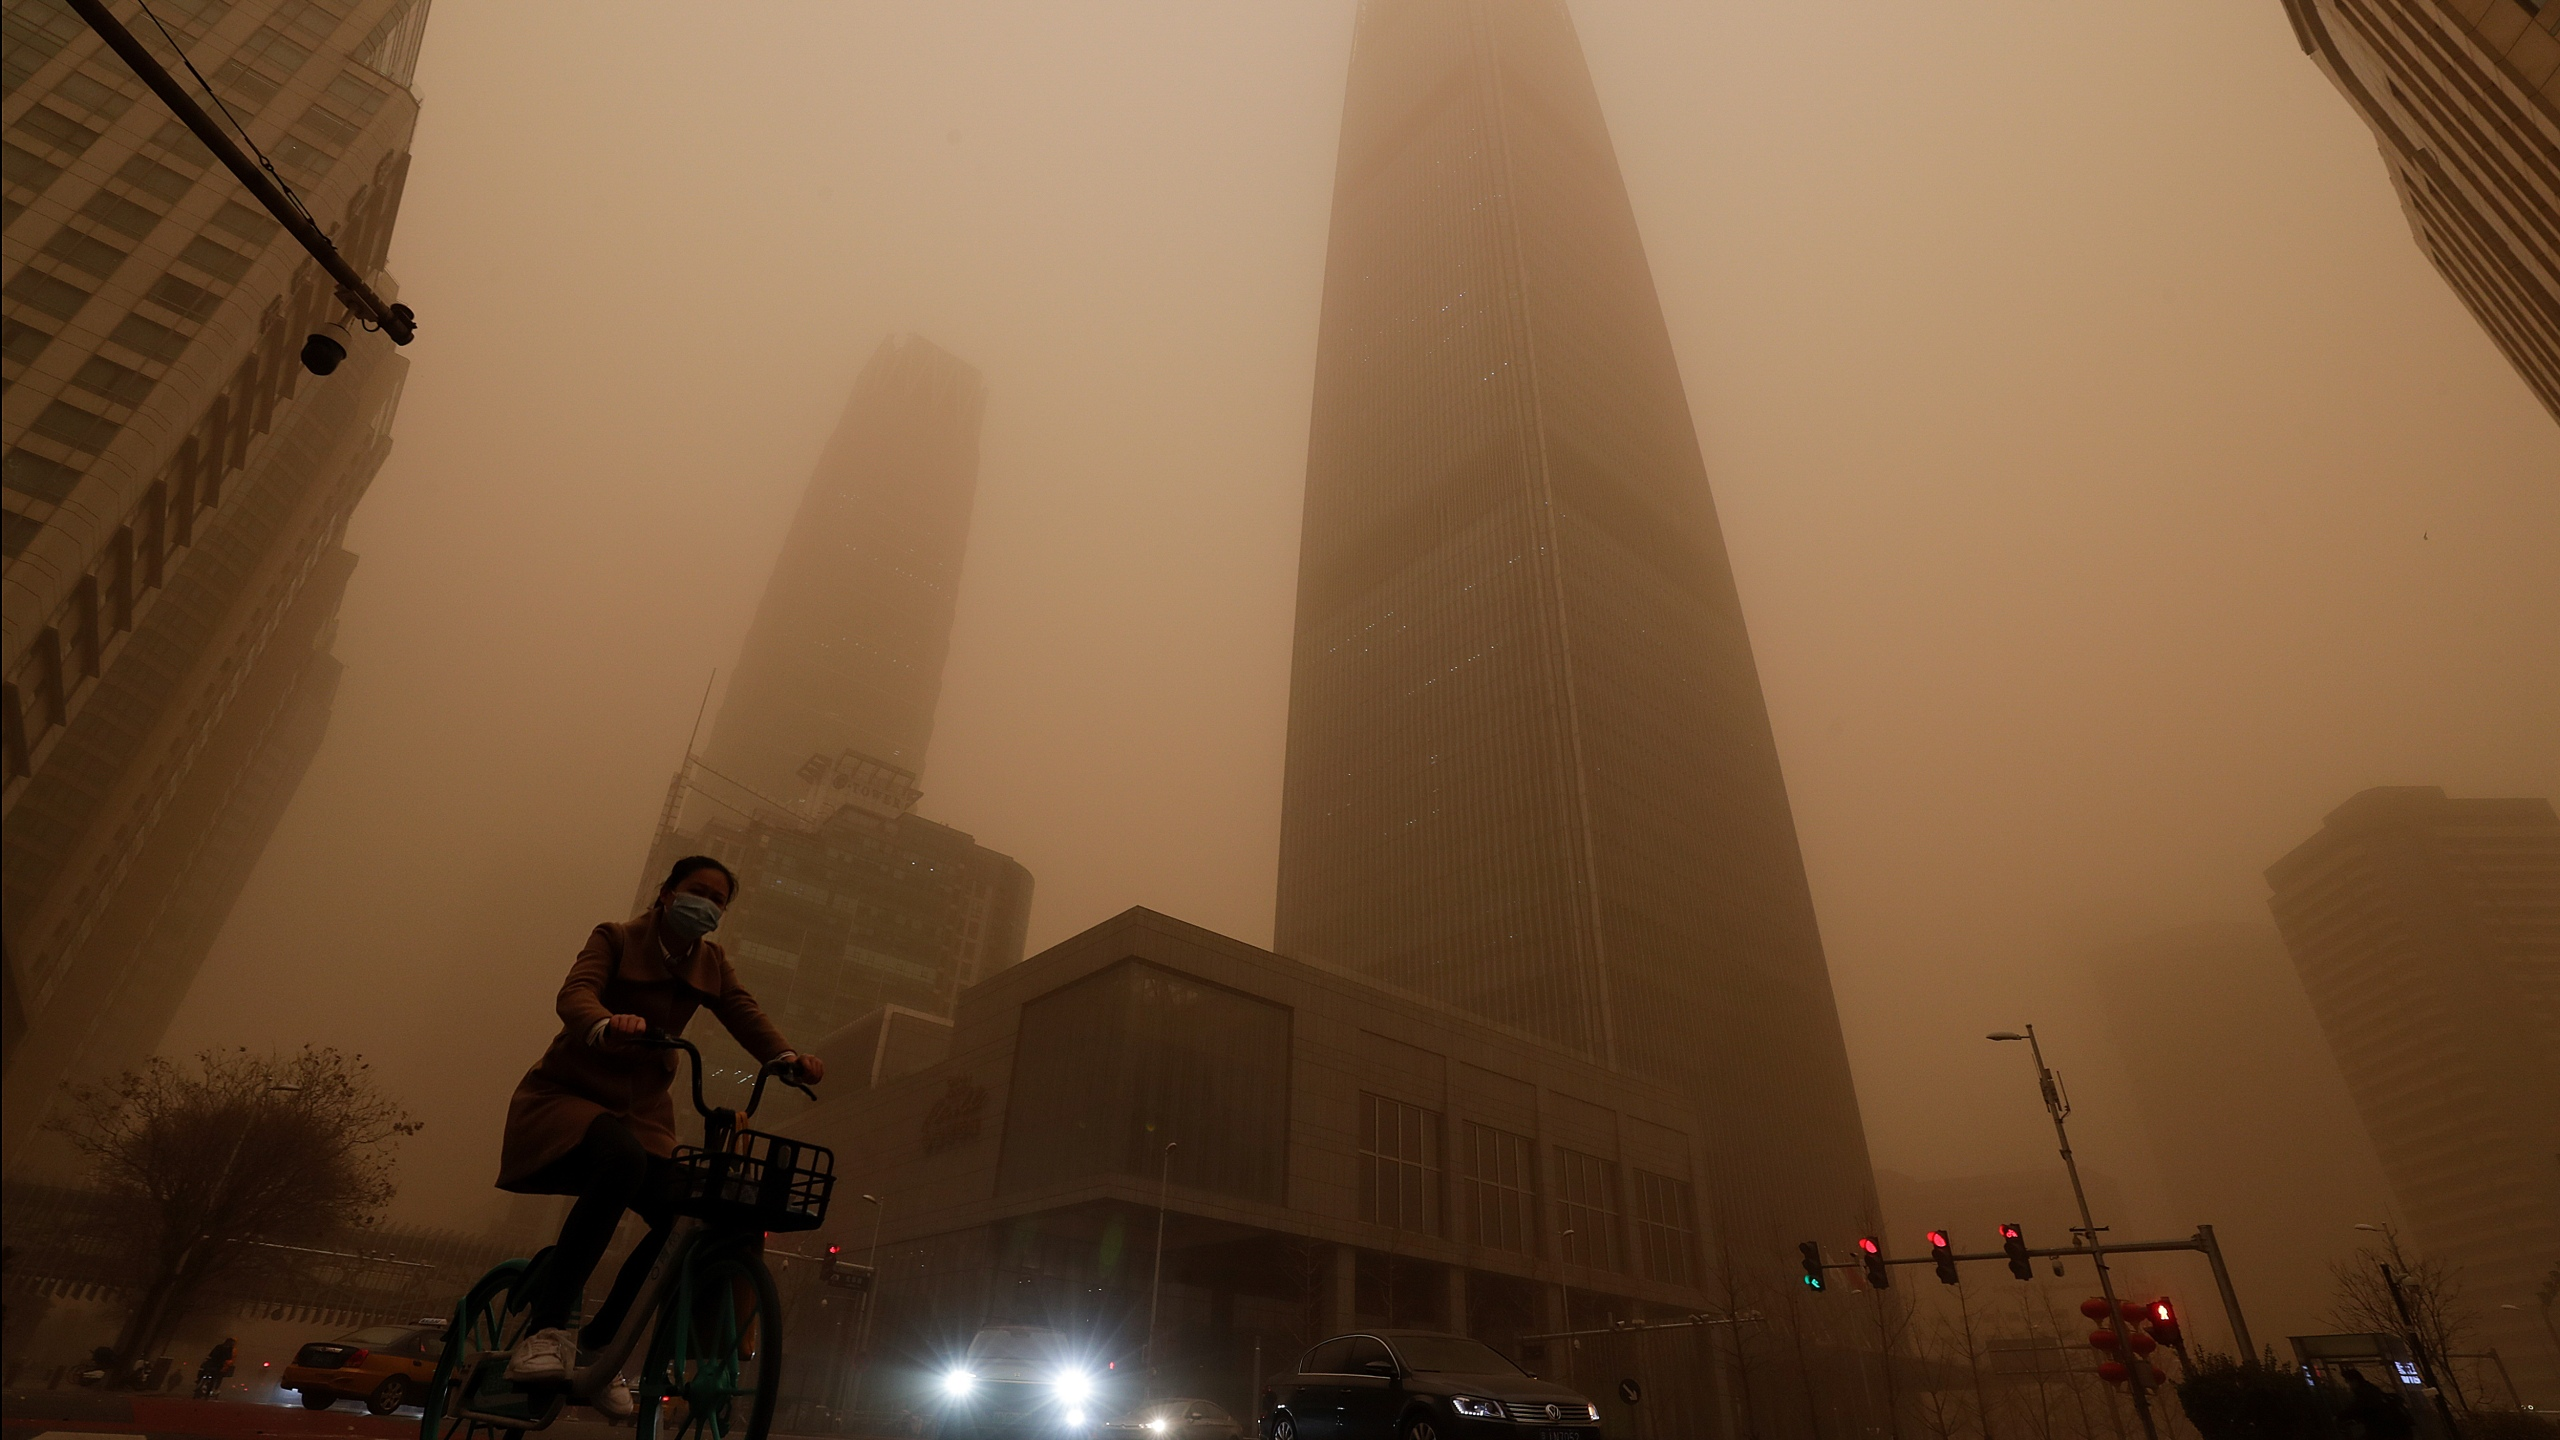 A cyclist and motorists move past office buildings amid a sandstorm during the morning rush hour in the central business district in Beijing, Monday, March 15, 2021. (AP Photo/Andy Wong)